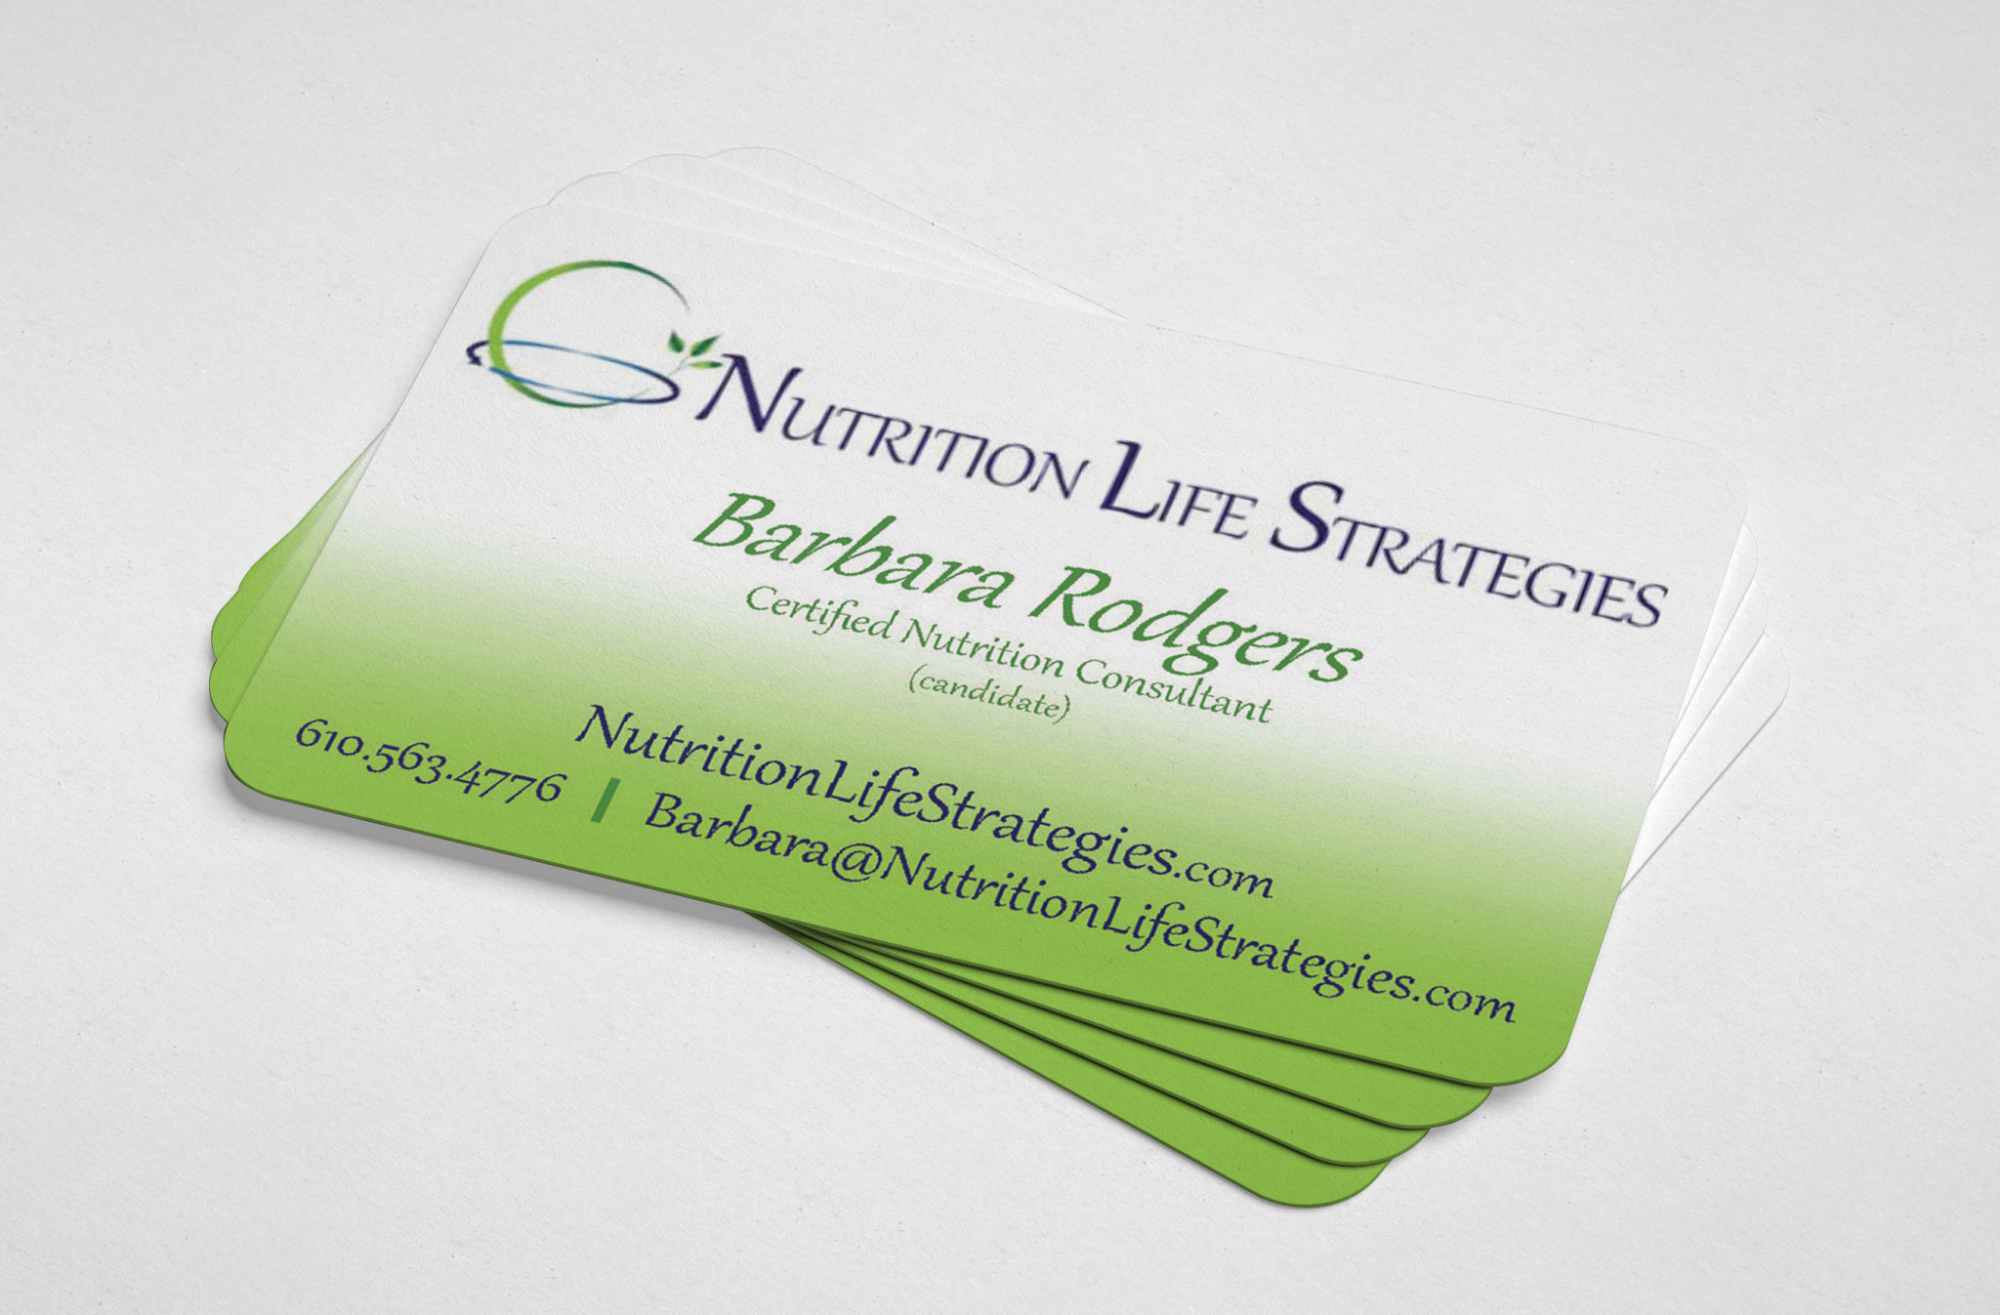 blossom nutrition life strategies business card